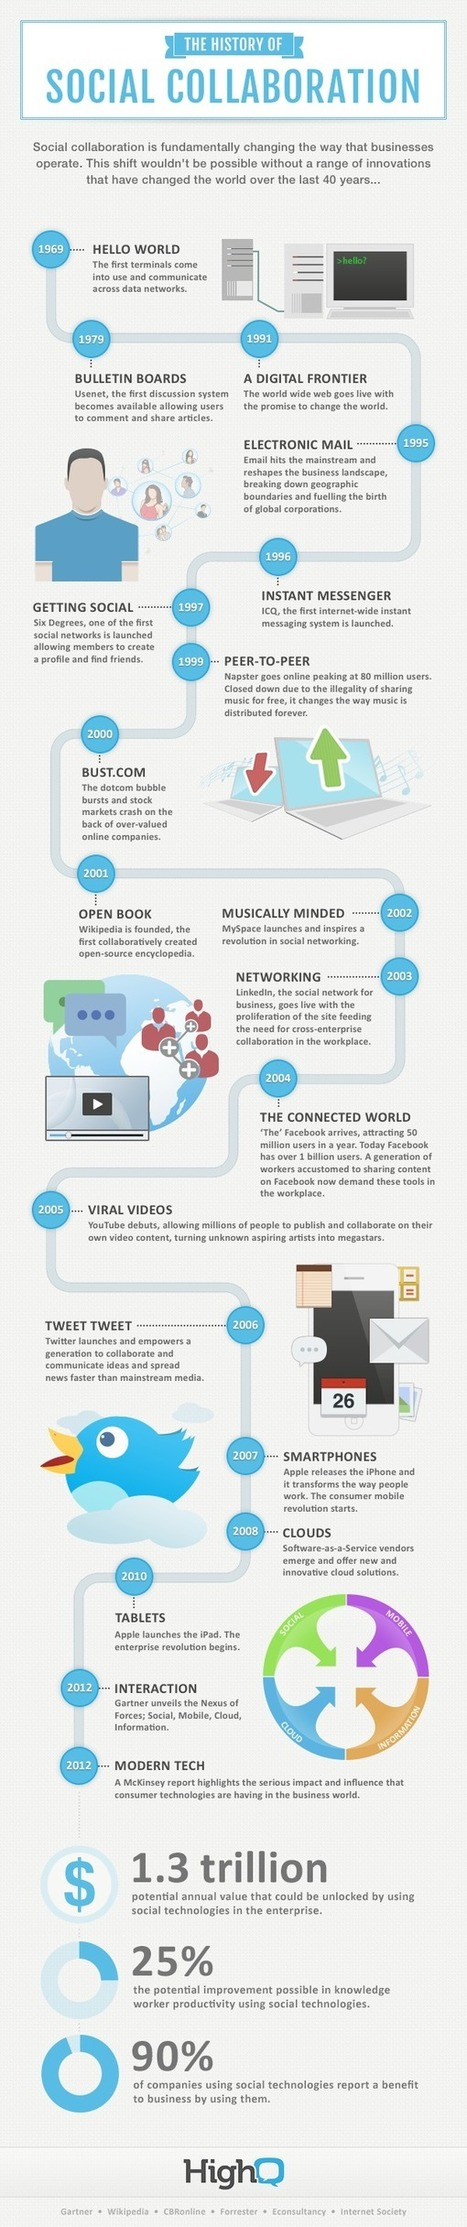 The History of Social Collaboration [INFOGRAPHIC] | Science, Technology and Society | Scoop.it